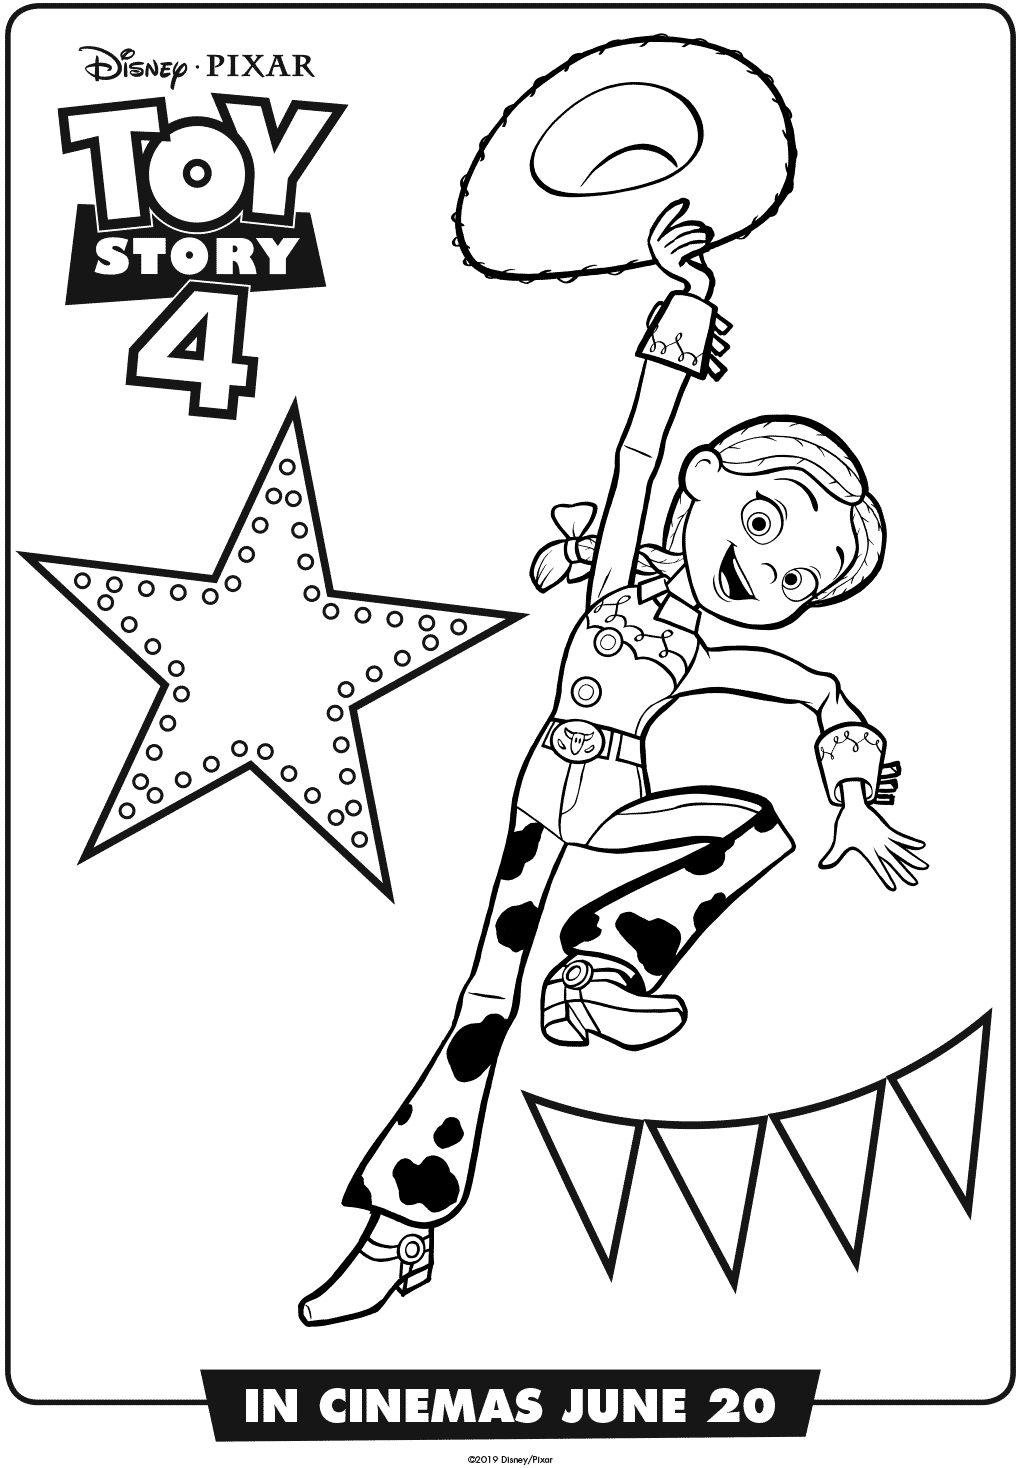 toy story 4 coloring pictures toy story 4 coloring pages for learning toy story 4 story pictures coloring 4 toy